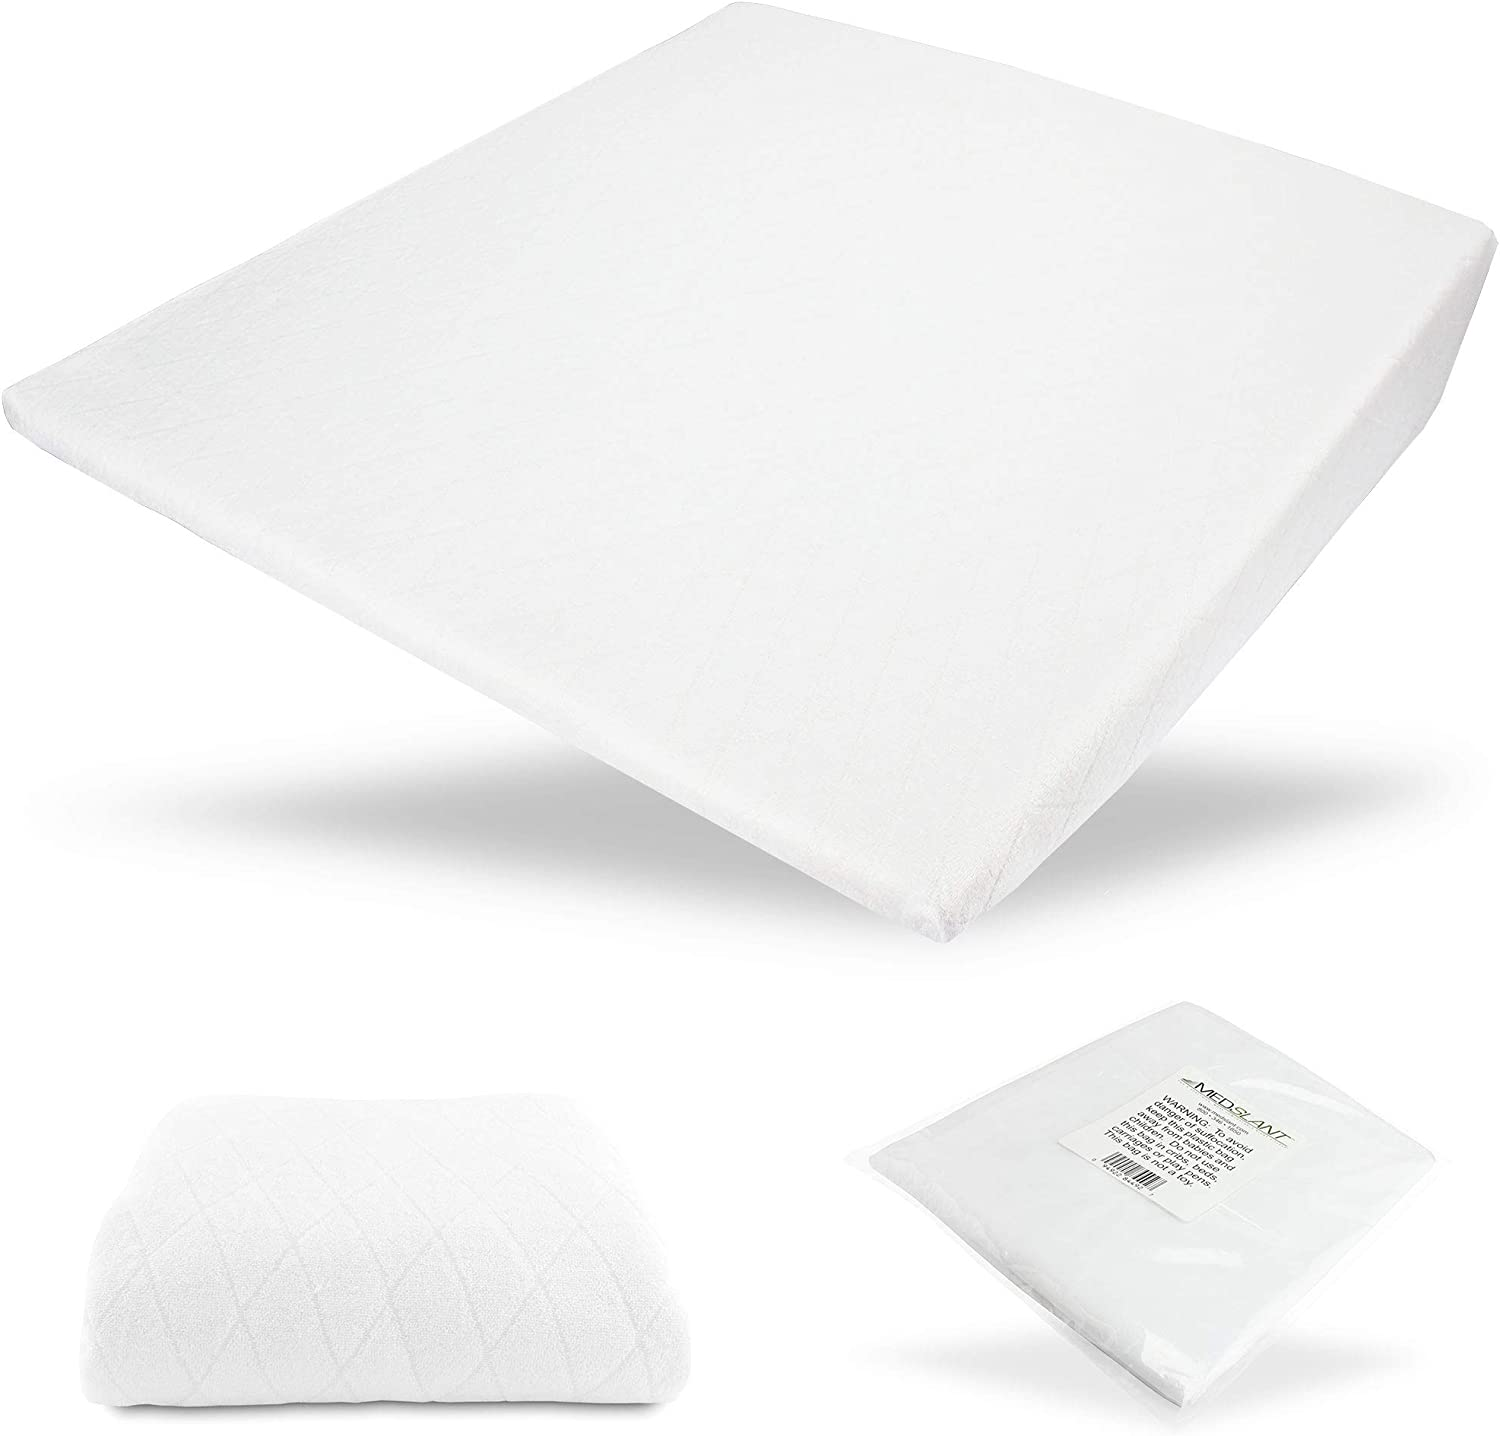 """MedSlant Acid Reflux Wedge Pillow - US Made """"Plus"""" - Memory Foam Overlay - Removable Microfiber Cover & Bonus Poly-Cotton Cover - Recommended Size for GERD & Other Sleep Issues"""